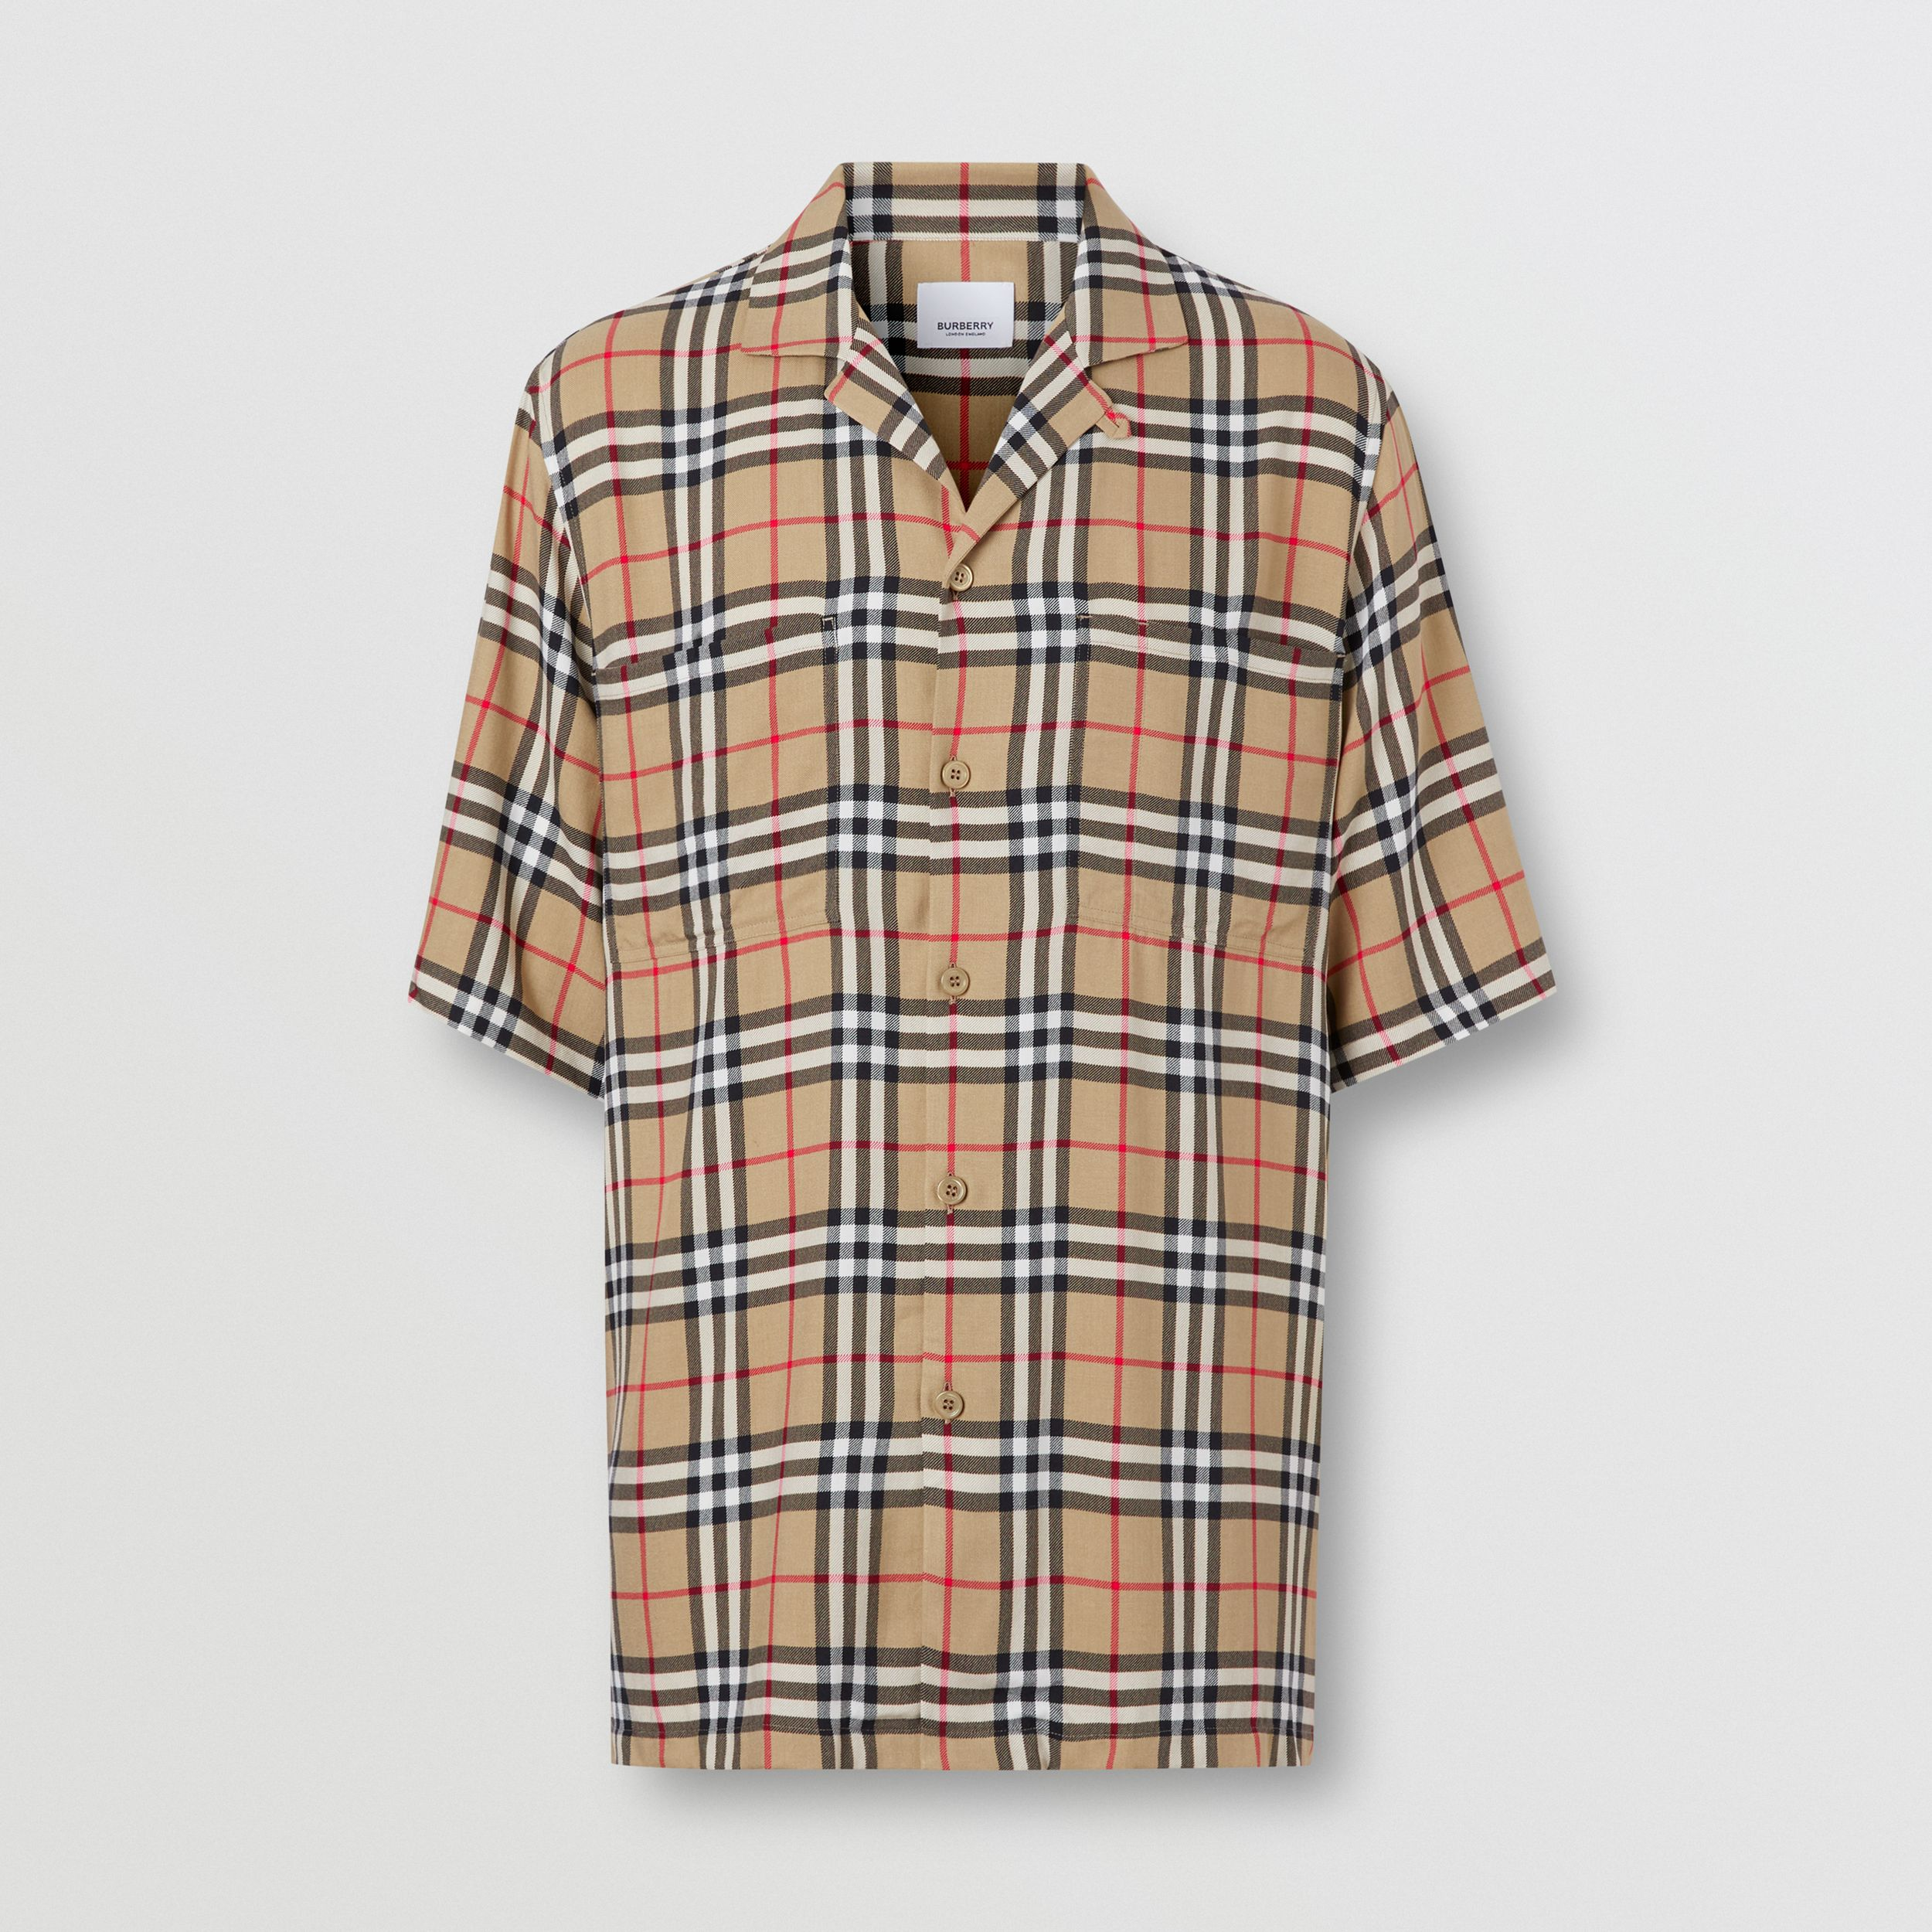 Short-sleeve Vintage Check Twill Shirt in Archive Beige - Men | Burberry - 4